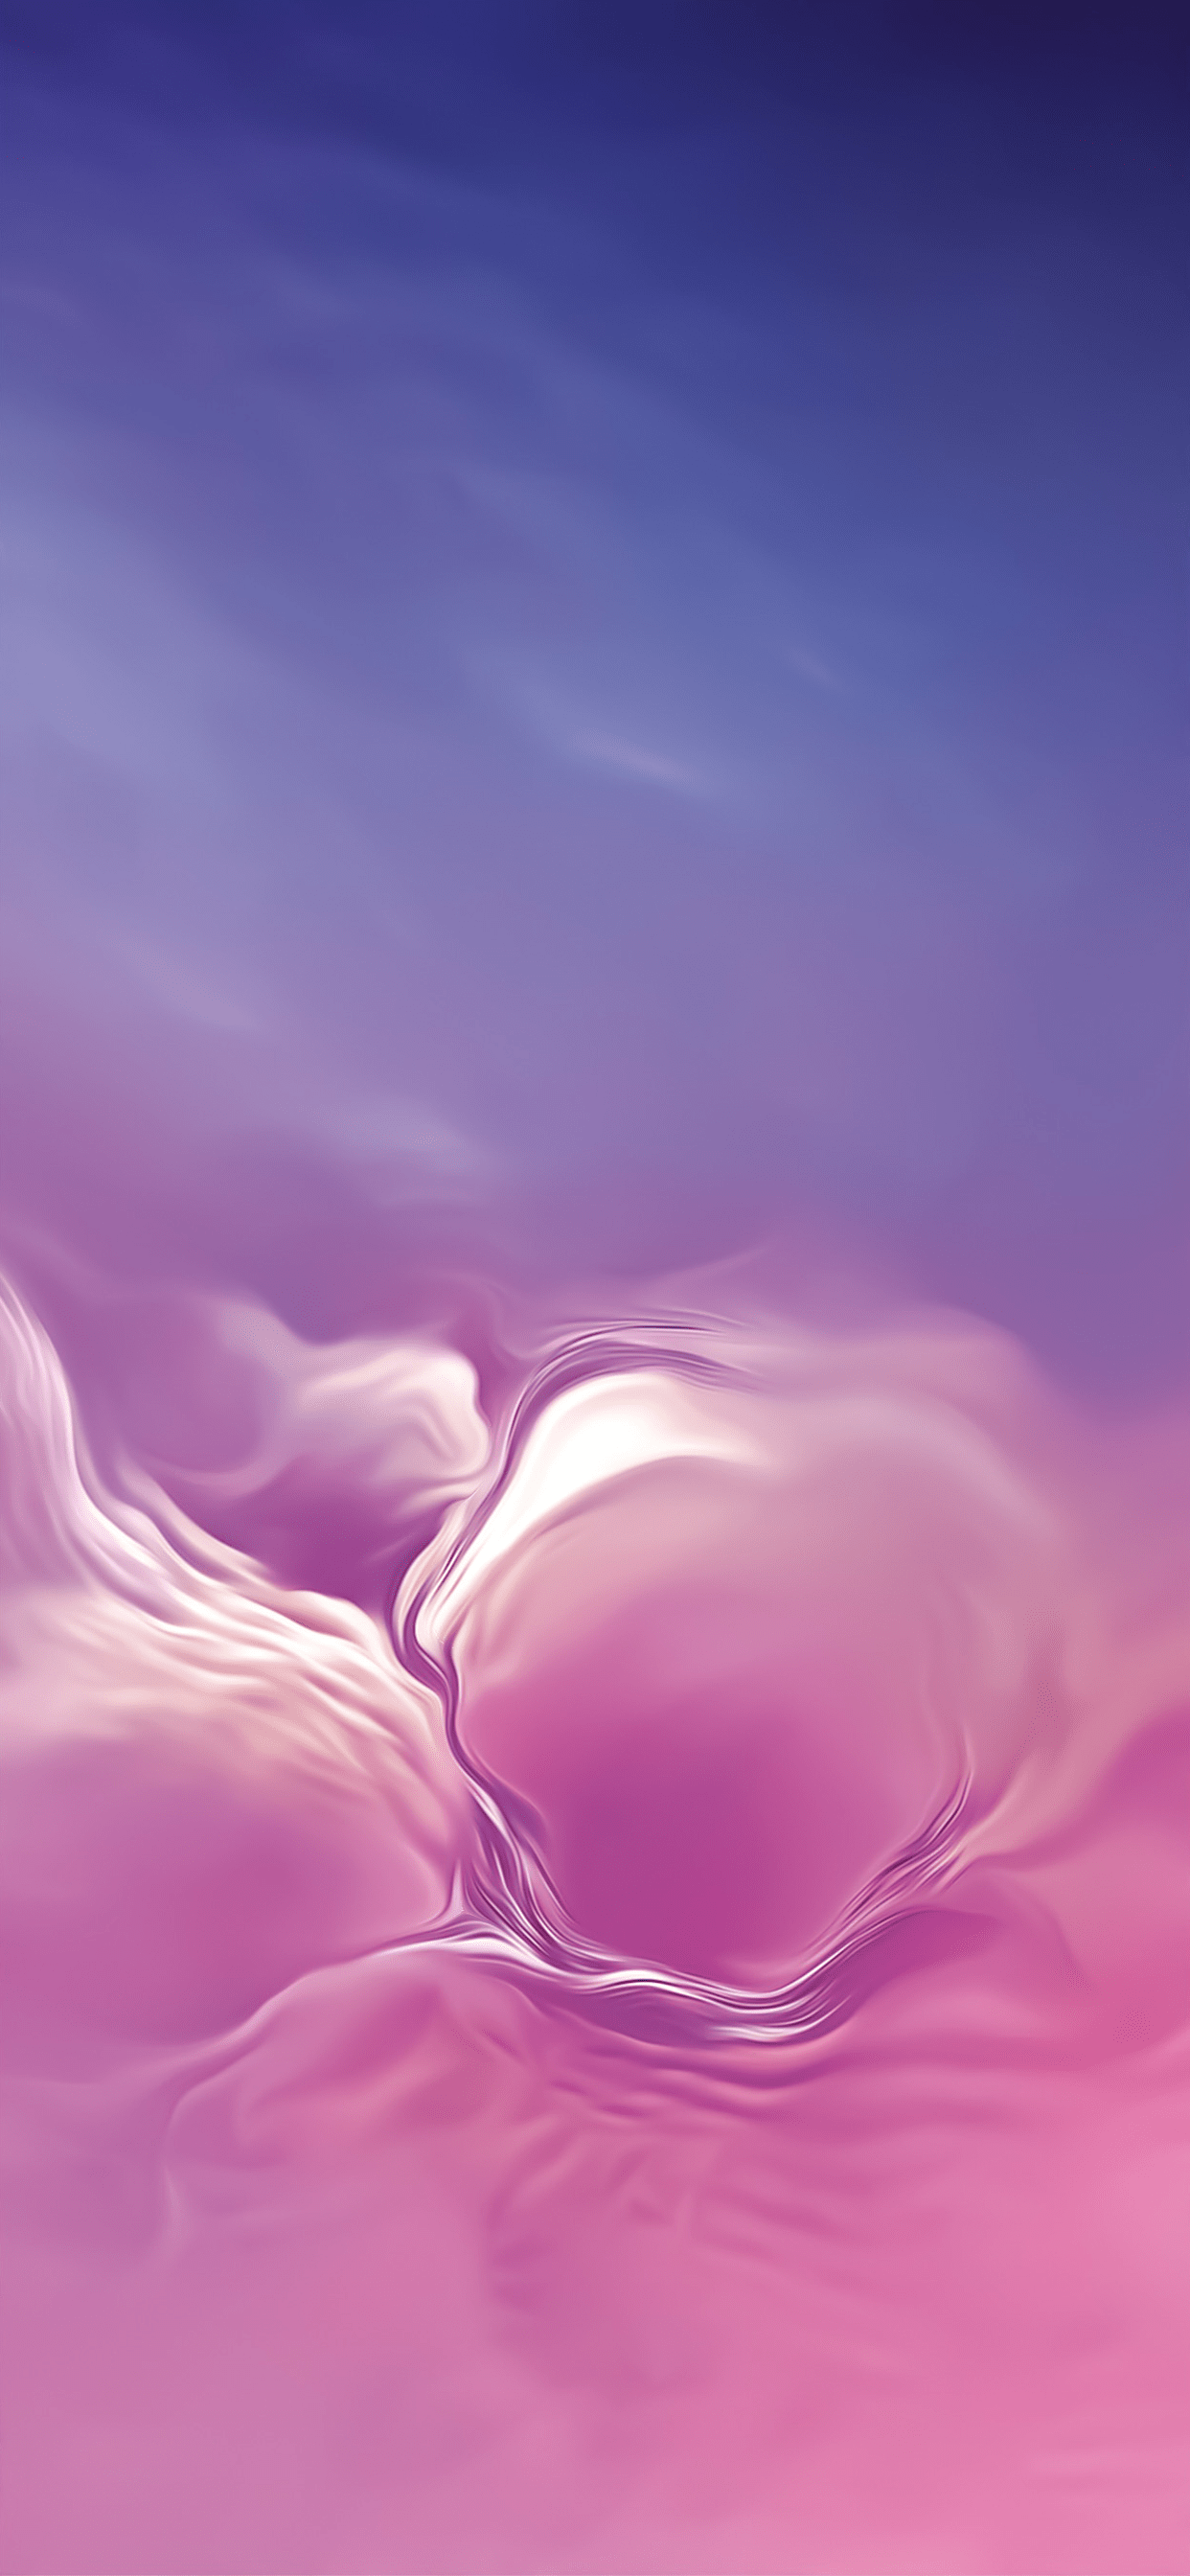 Download Official Samsung Galaxy S10 Wallpapers 9